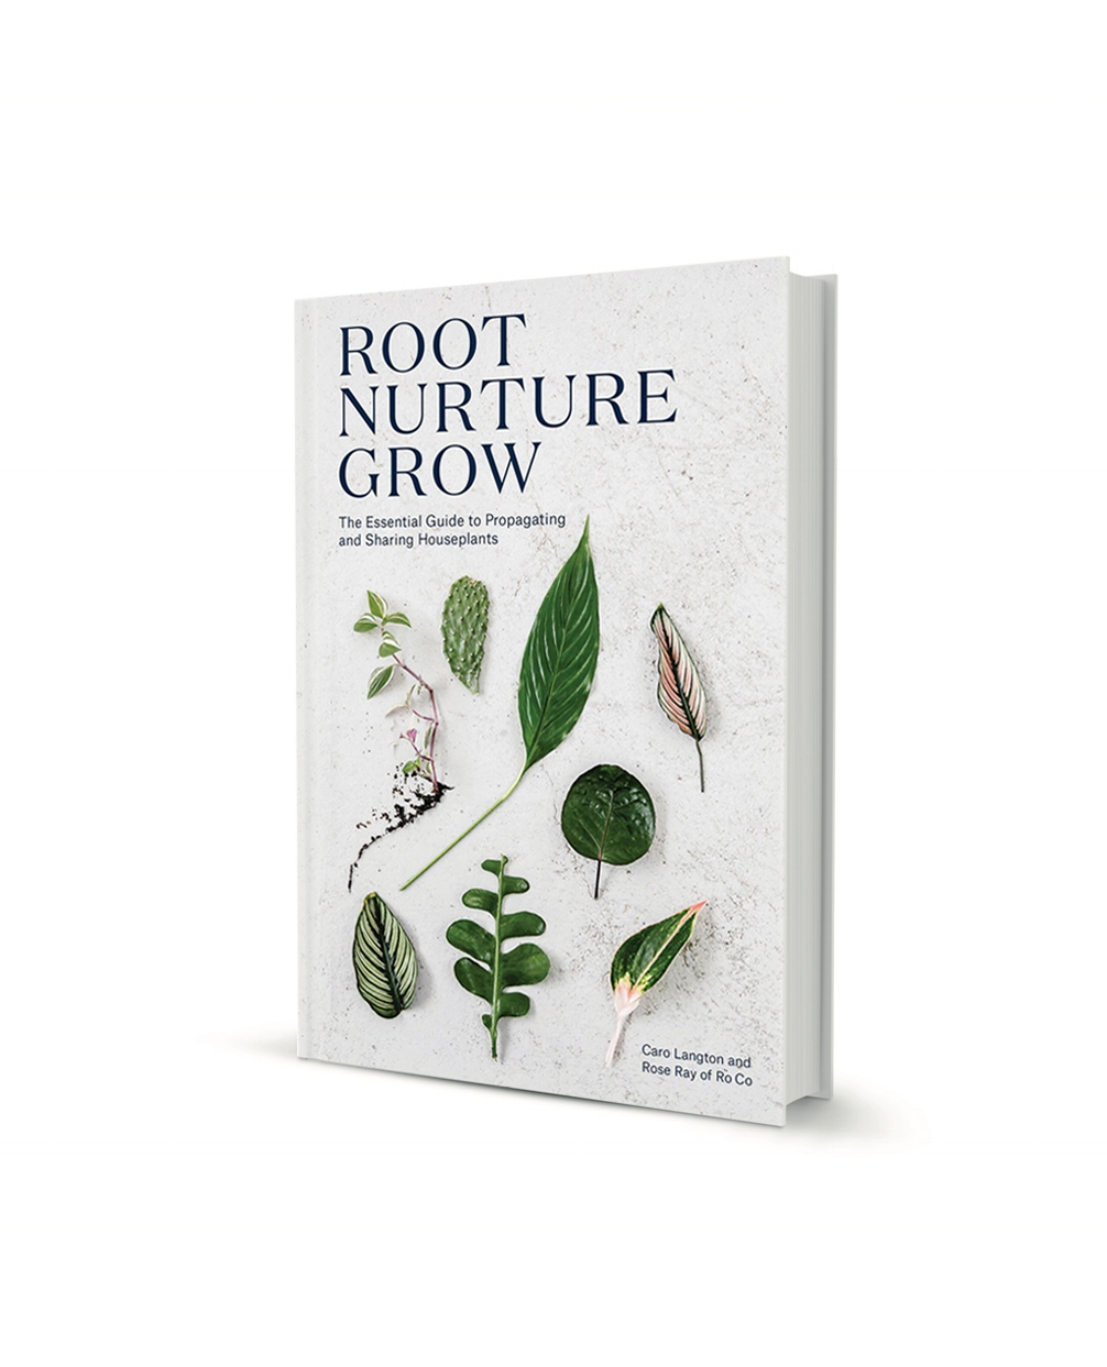 Go on, Get Your Hands Dirty. - Discover how to choose, nurture, style and share your favourite indoor plants with our best-selling books.